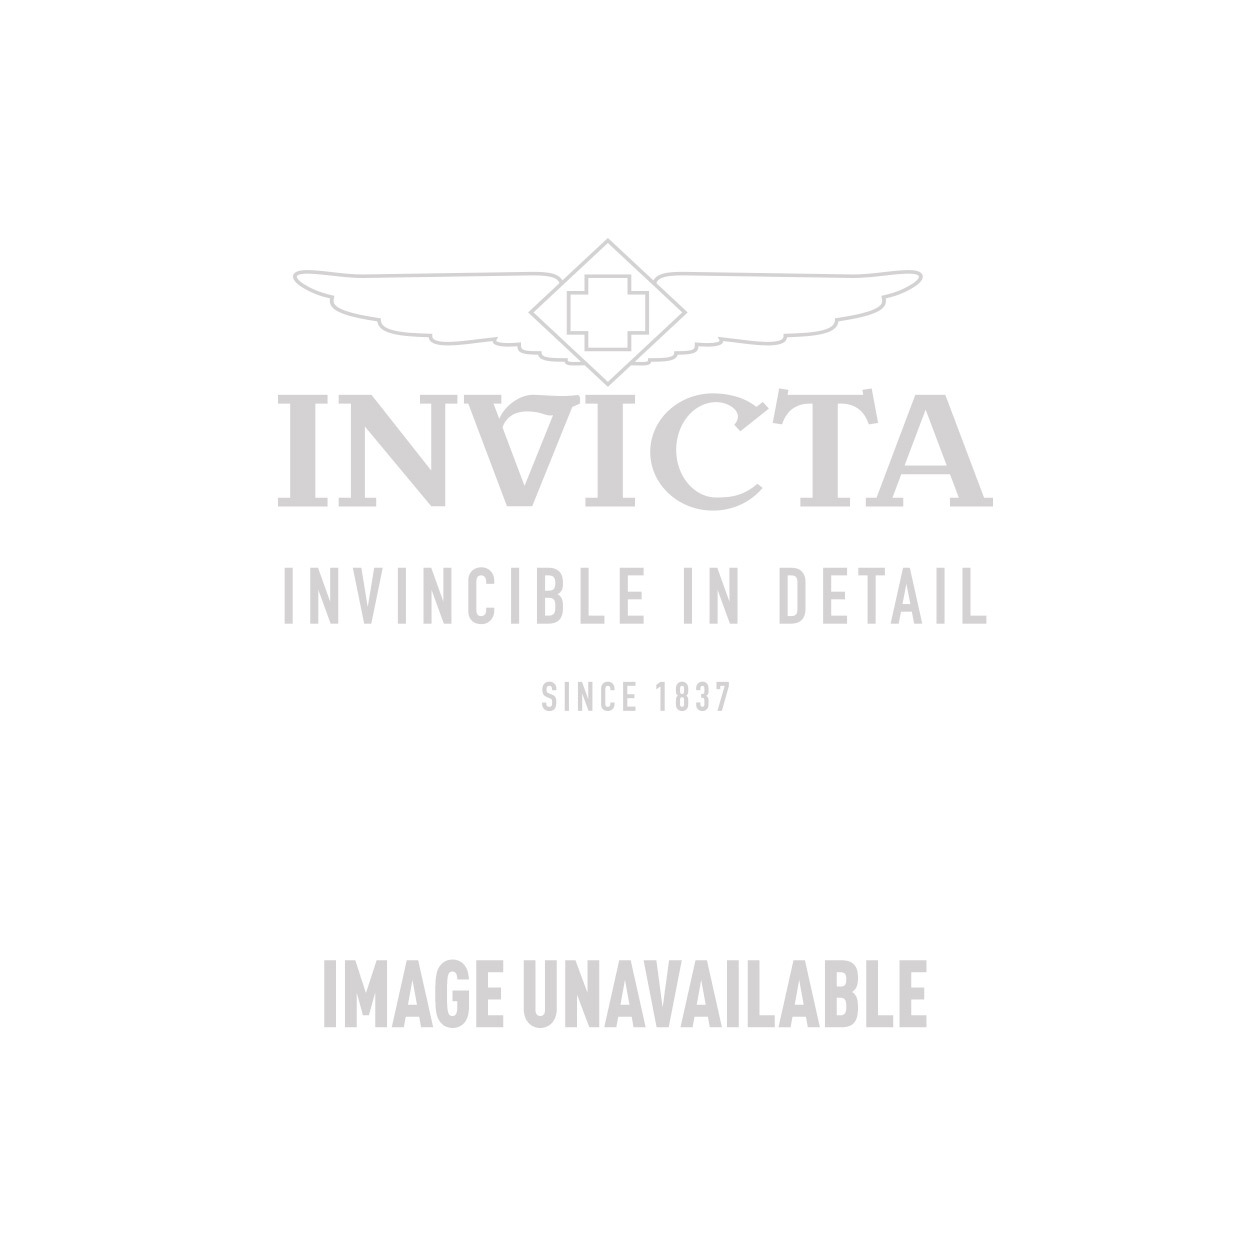 Invicta  Venom Titanium  Automatic Watch - Black, Titanium case with Black tone Silicone band - Model 11929